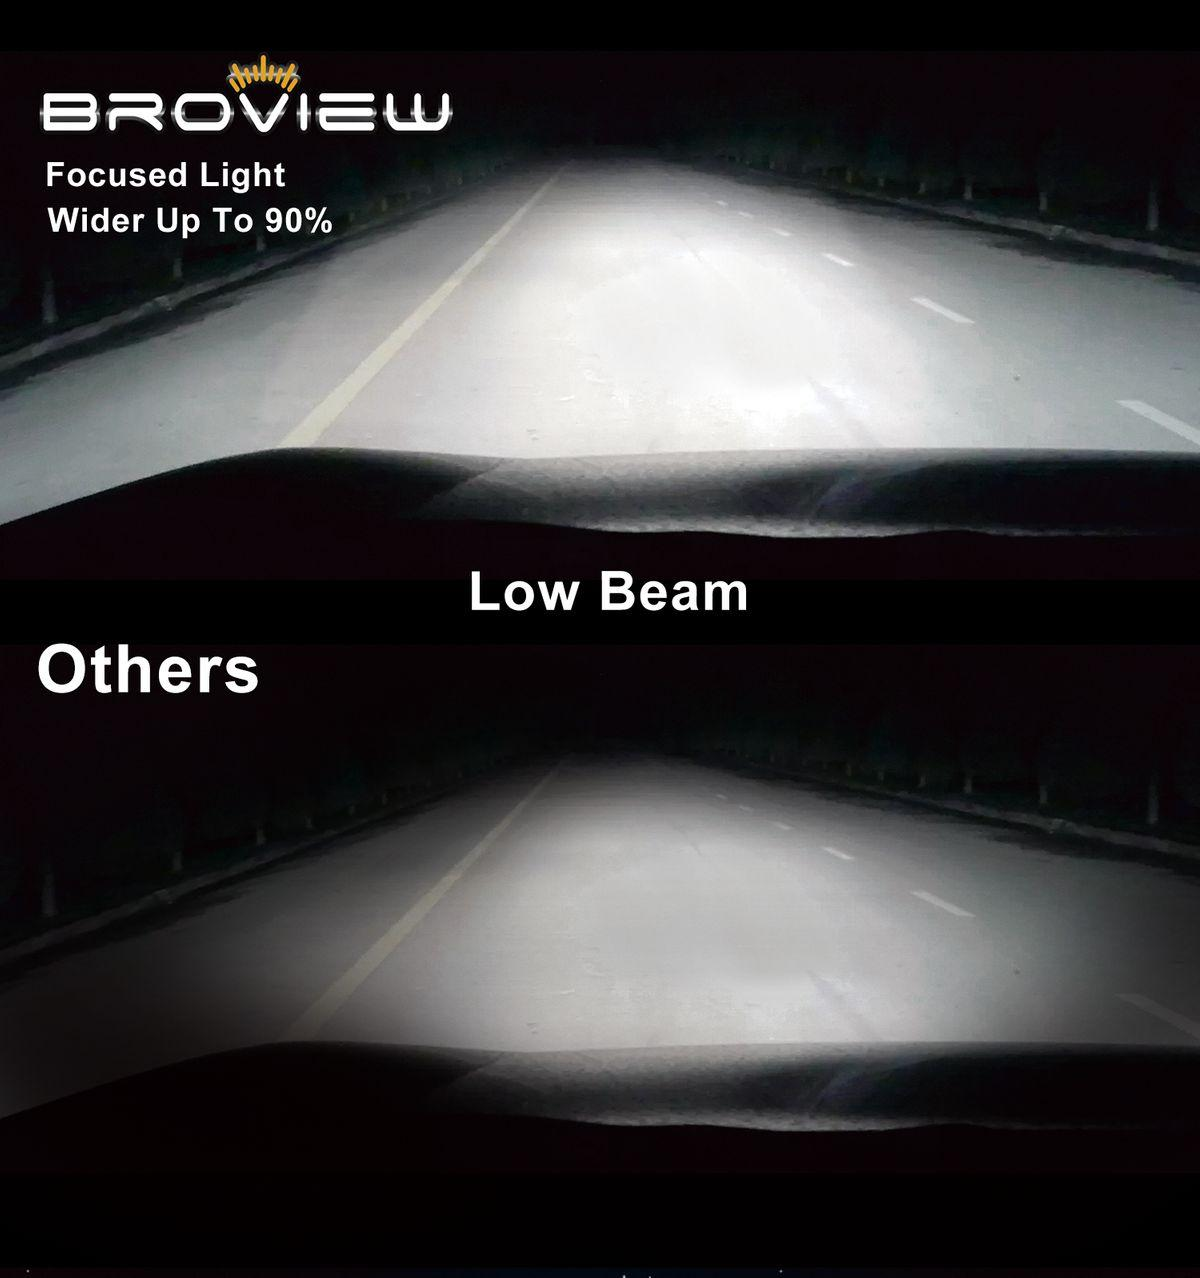 21 Best Counter Across Low Window Images On Pinterest: H7 8000LM Headligh Low Beam LED Bulb Replace HID White